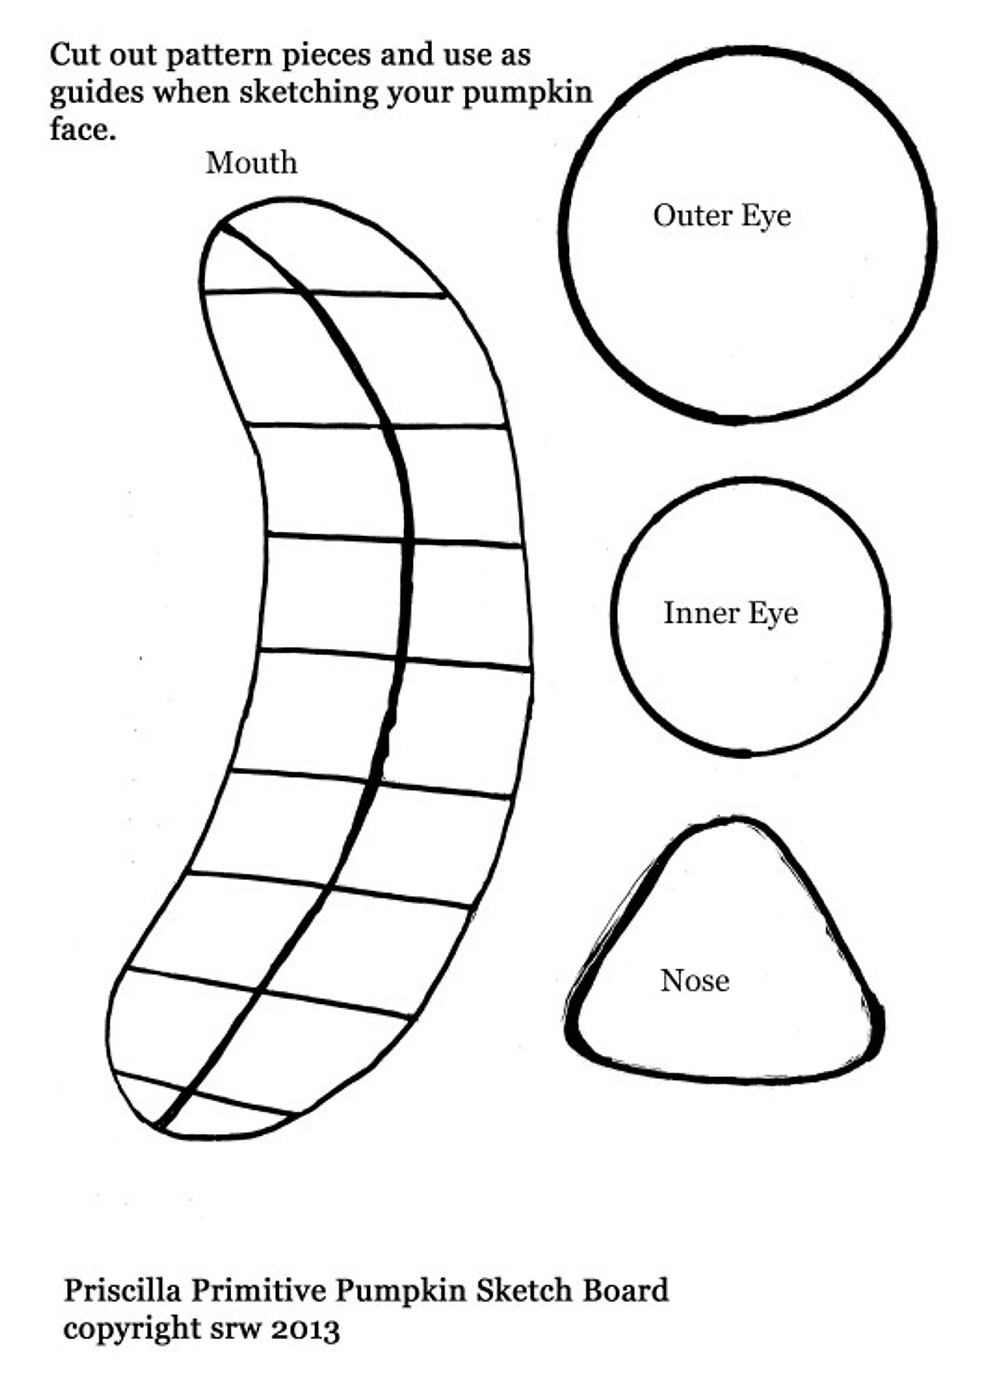 Pattern for eyes, nose and mouth for your primitive pumpkin.  Please note that you can adjust the pattern to fit your pumpkin face.  Perhaps you would like the eyes and mouth to be smaller.